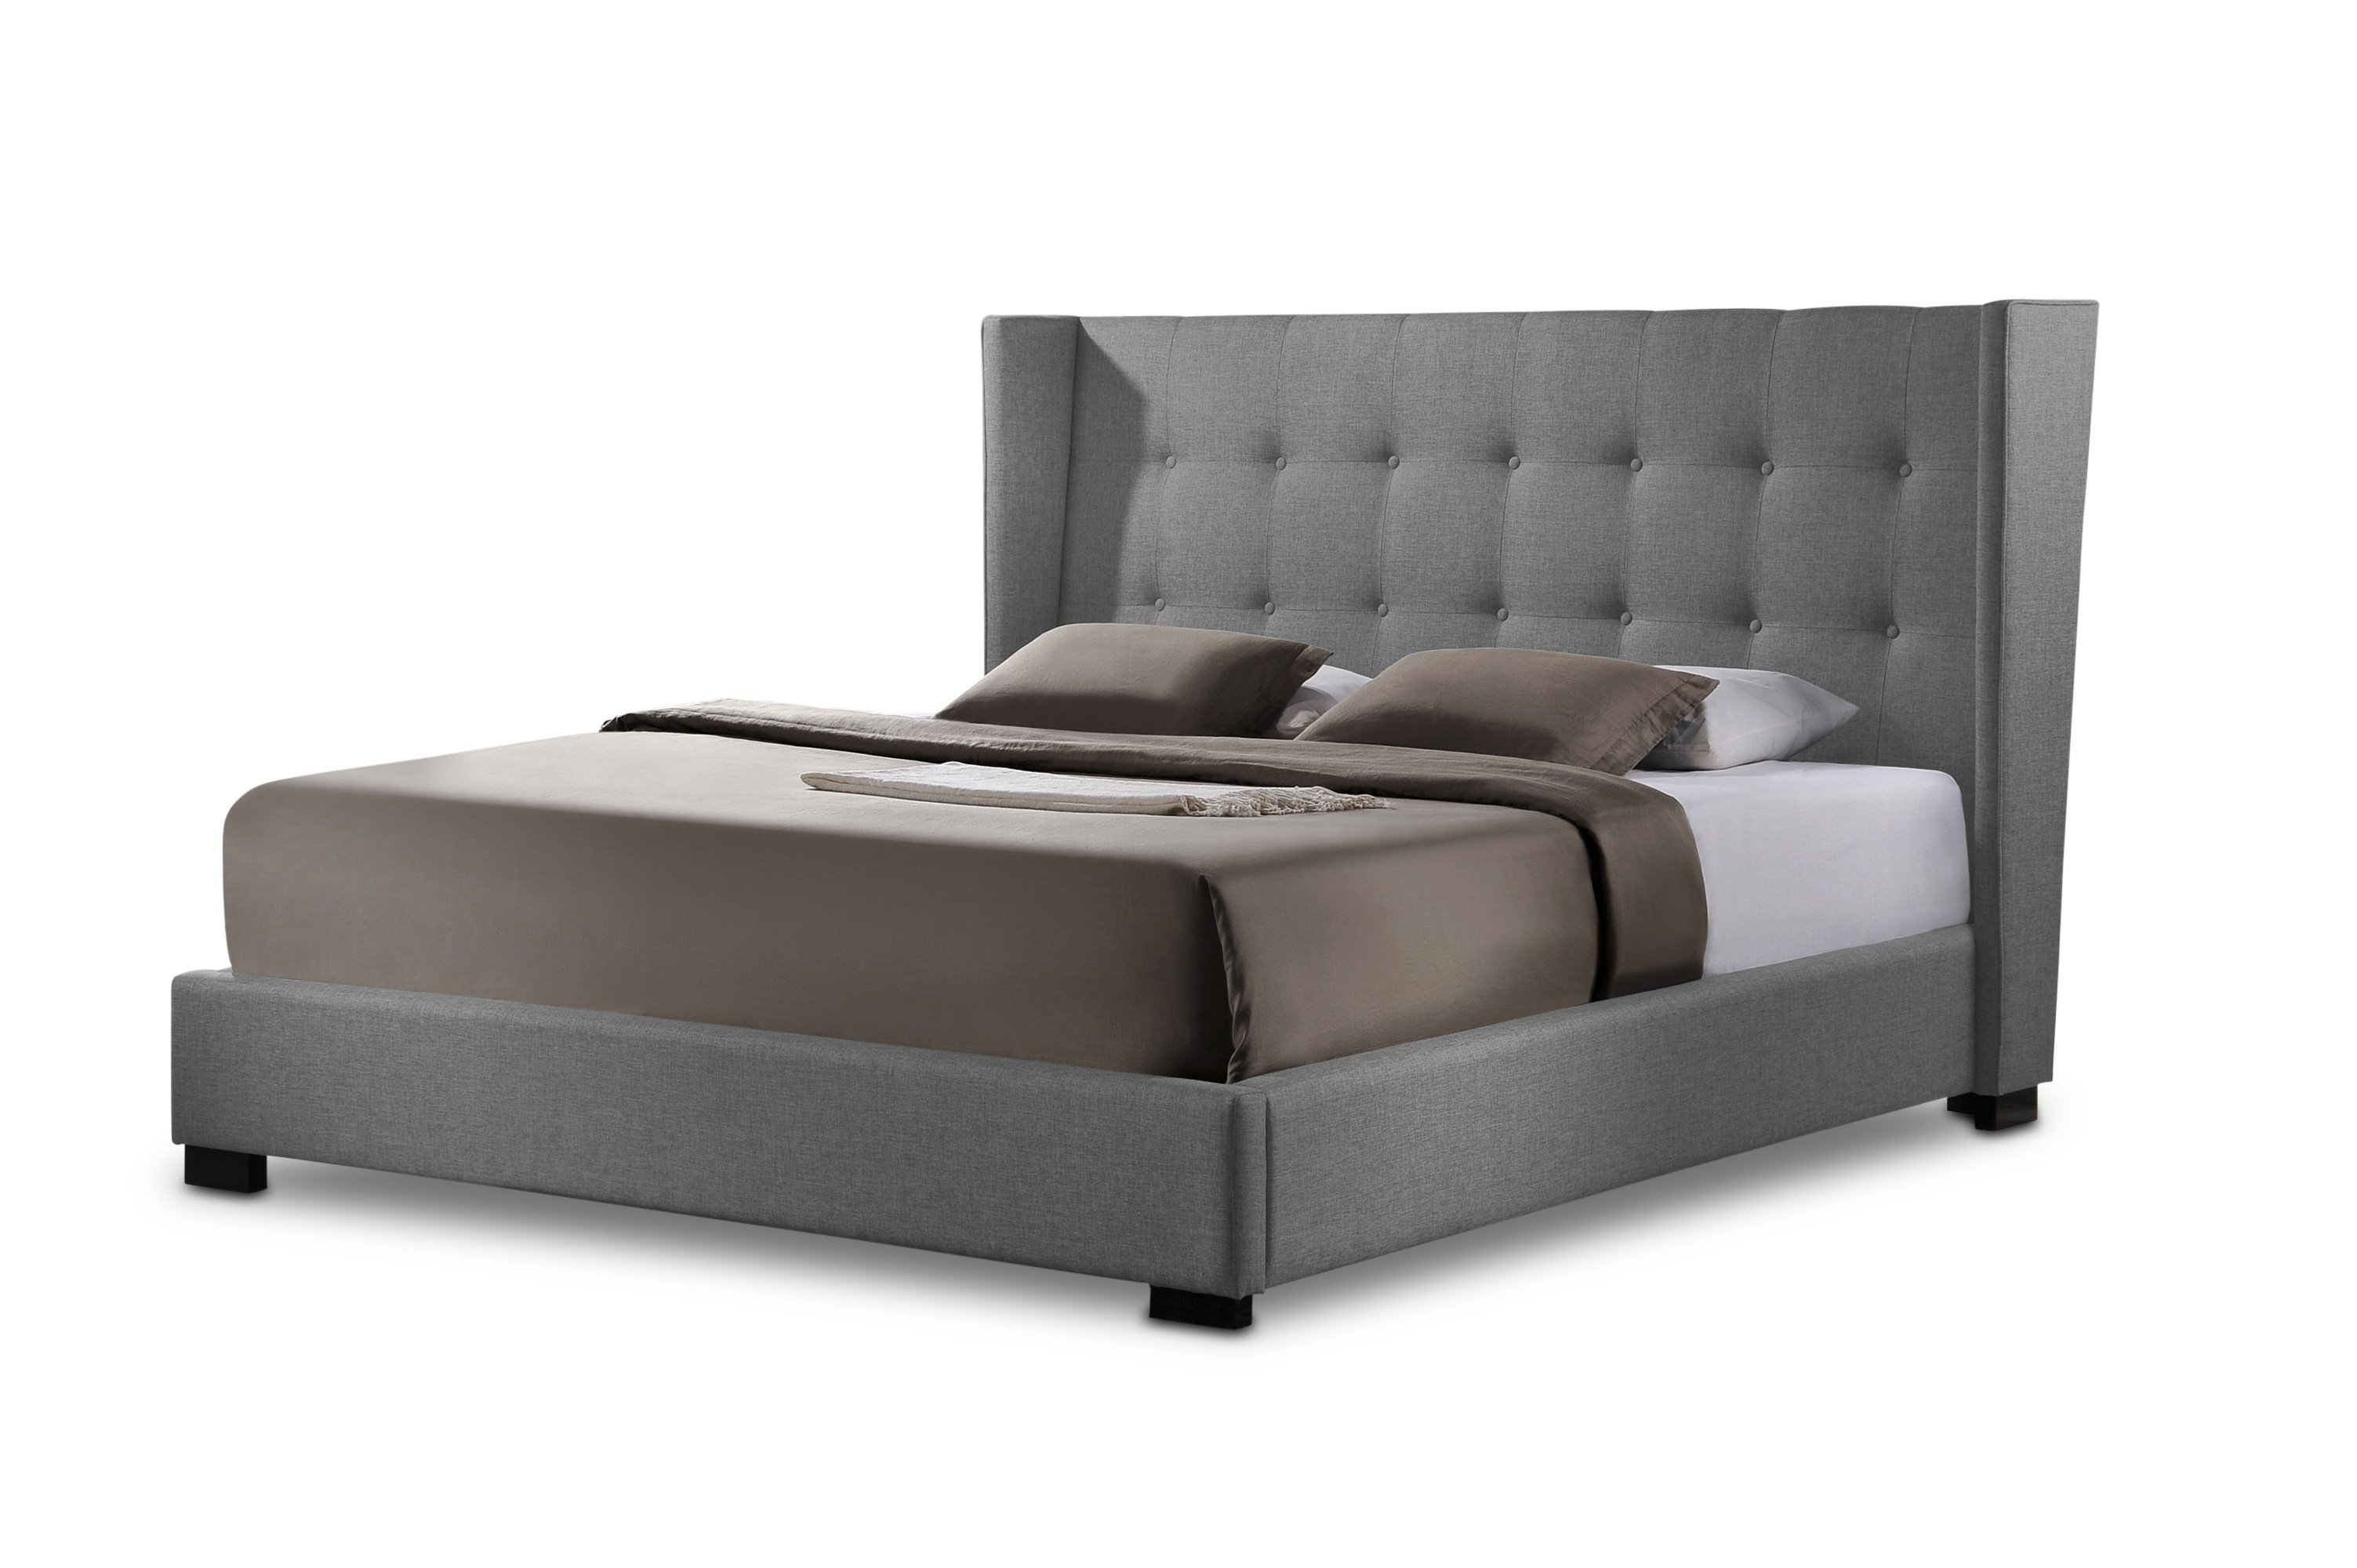 Baxton Studio Favela Gray Linen Modern Bed With Upholstered Headboard King Size 1stopbedrooms